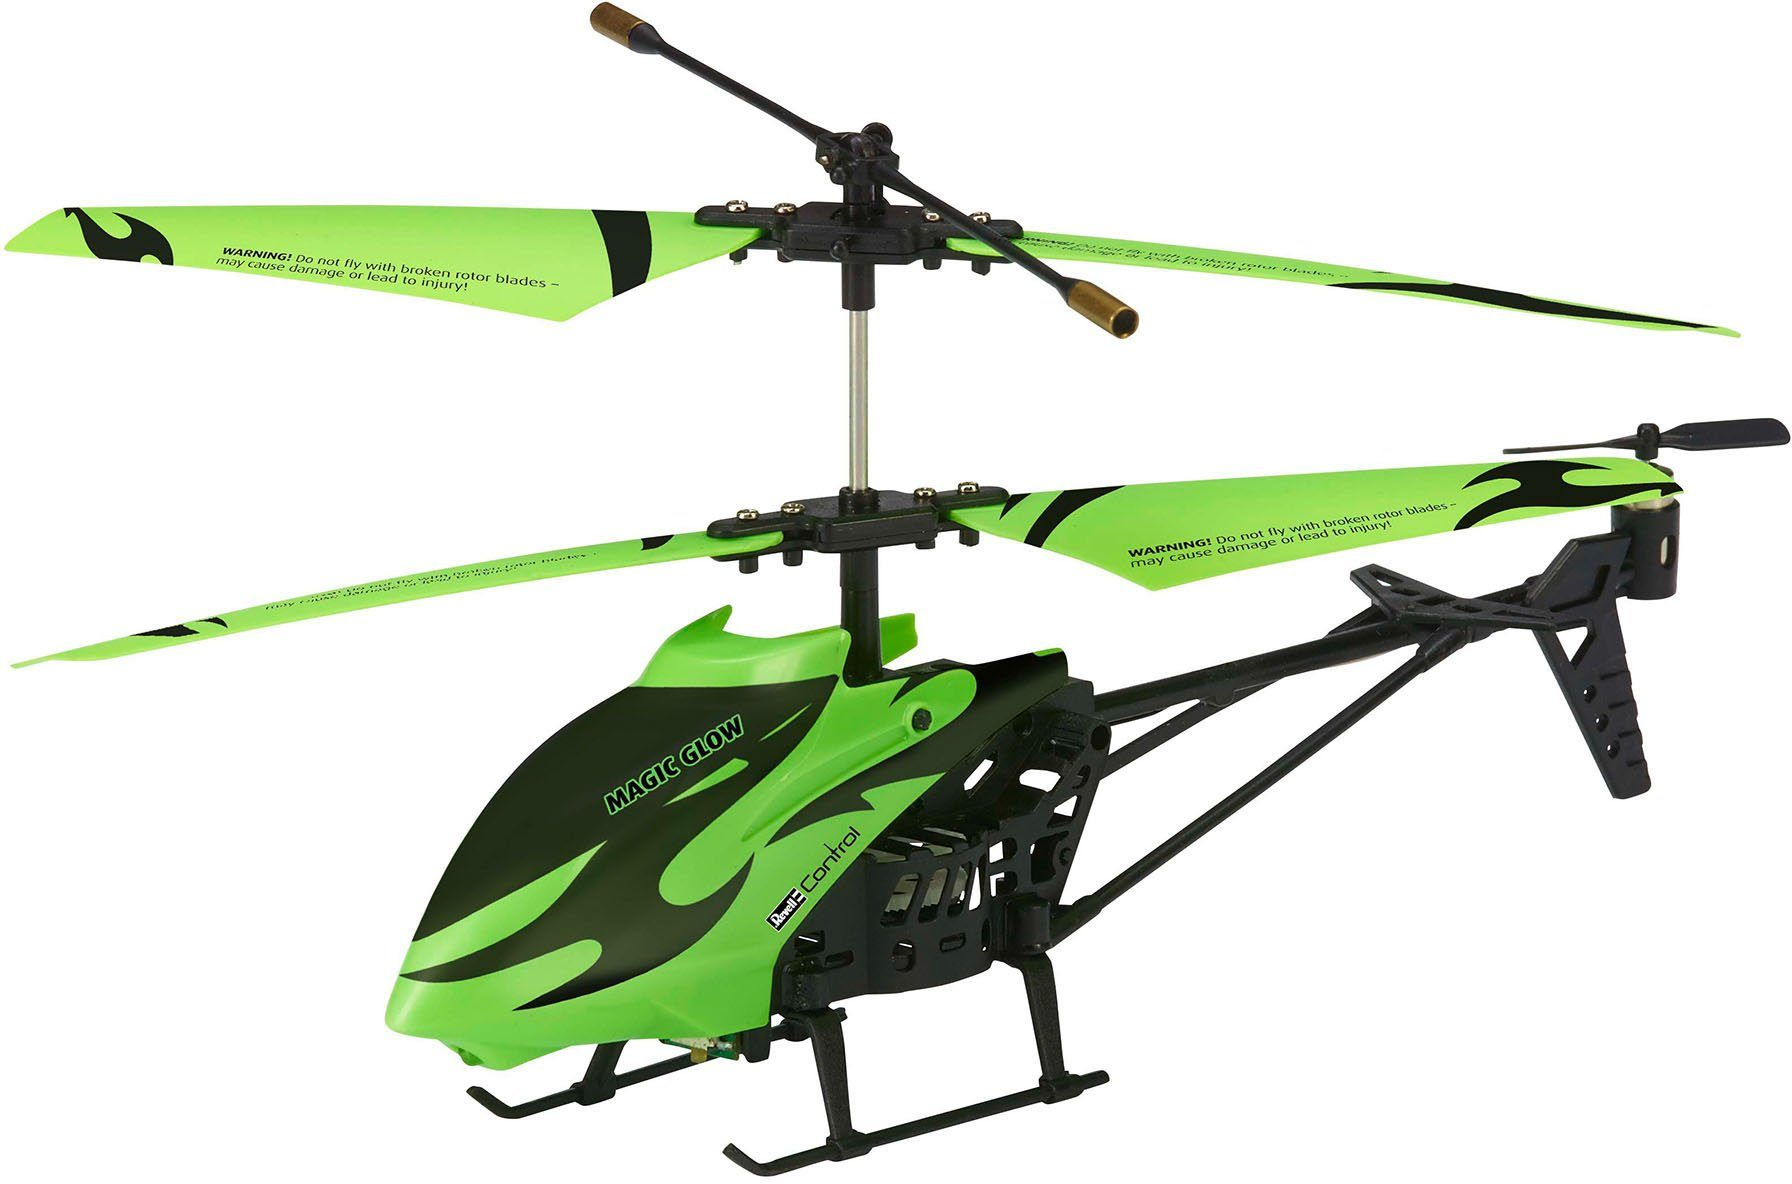 Revell® Control, RC Helicopter mit Glow in the dark Effekt, »Magic Glow«